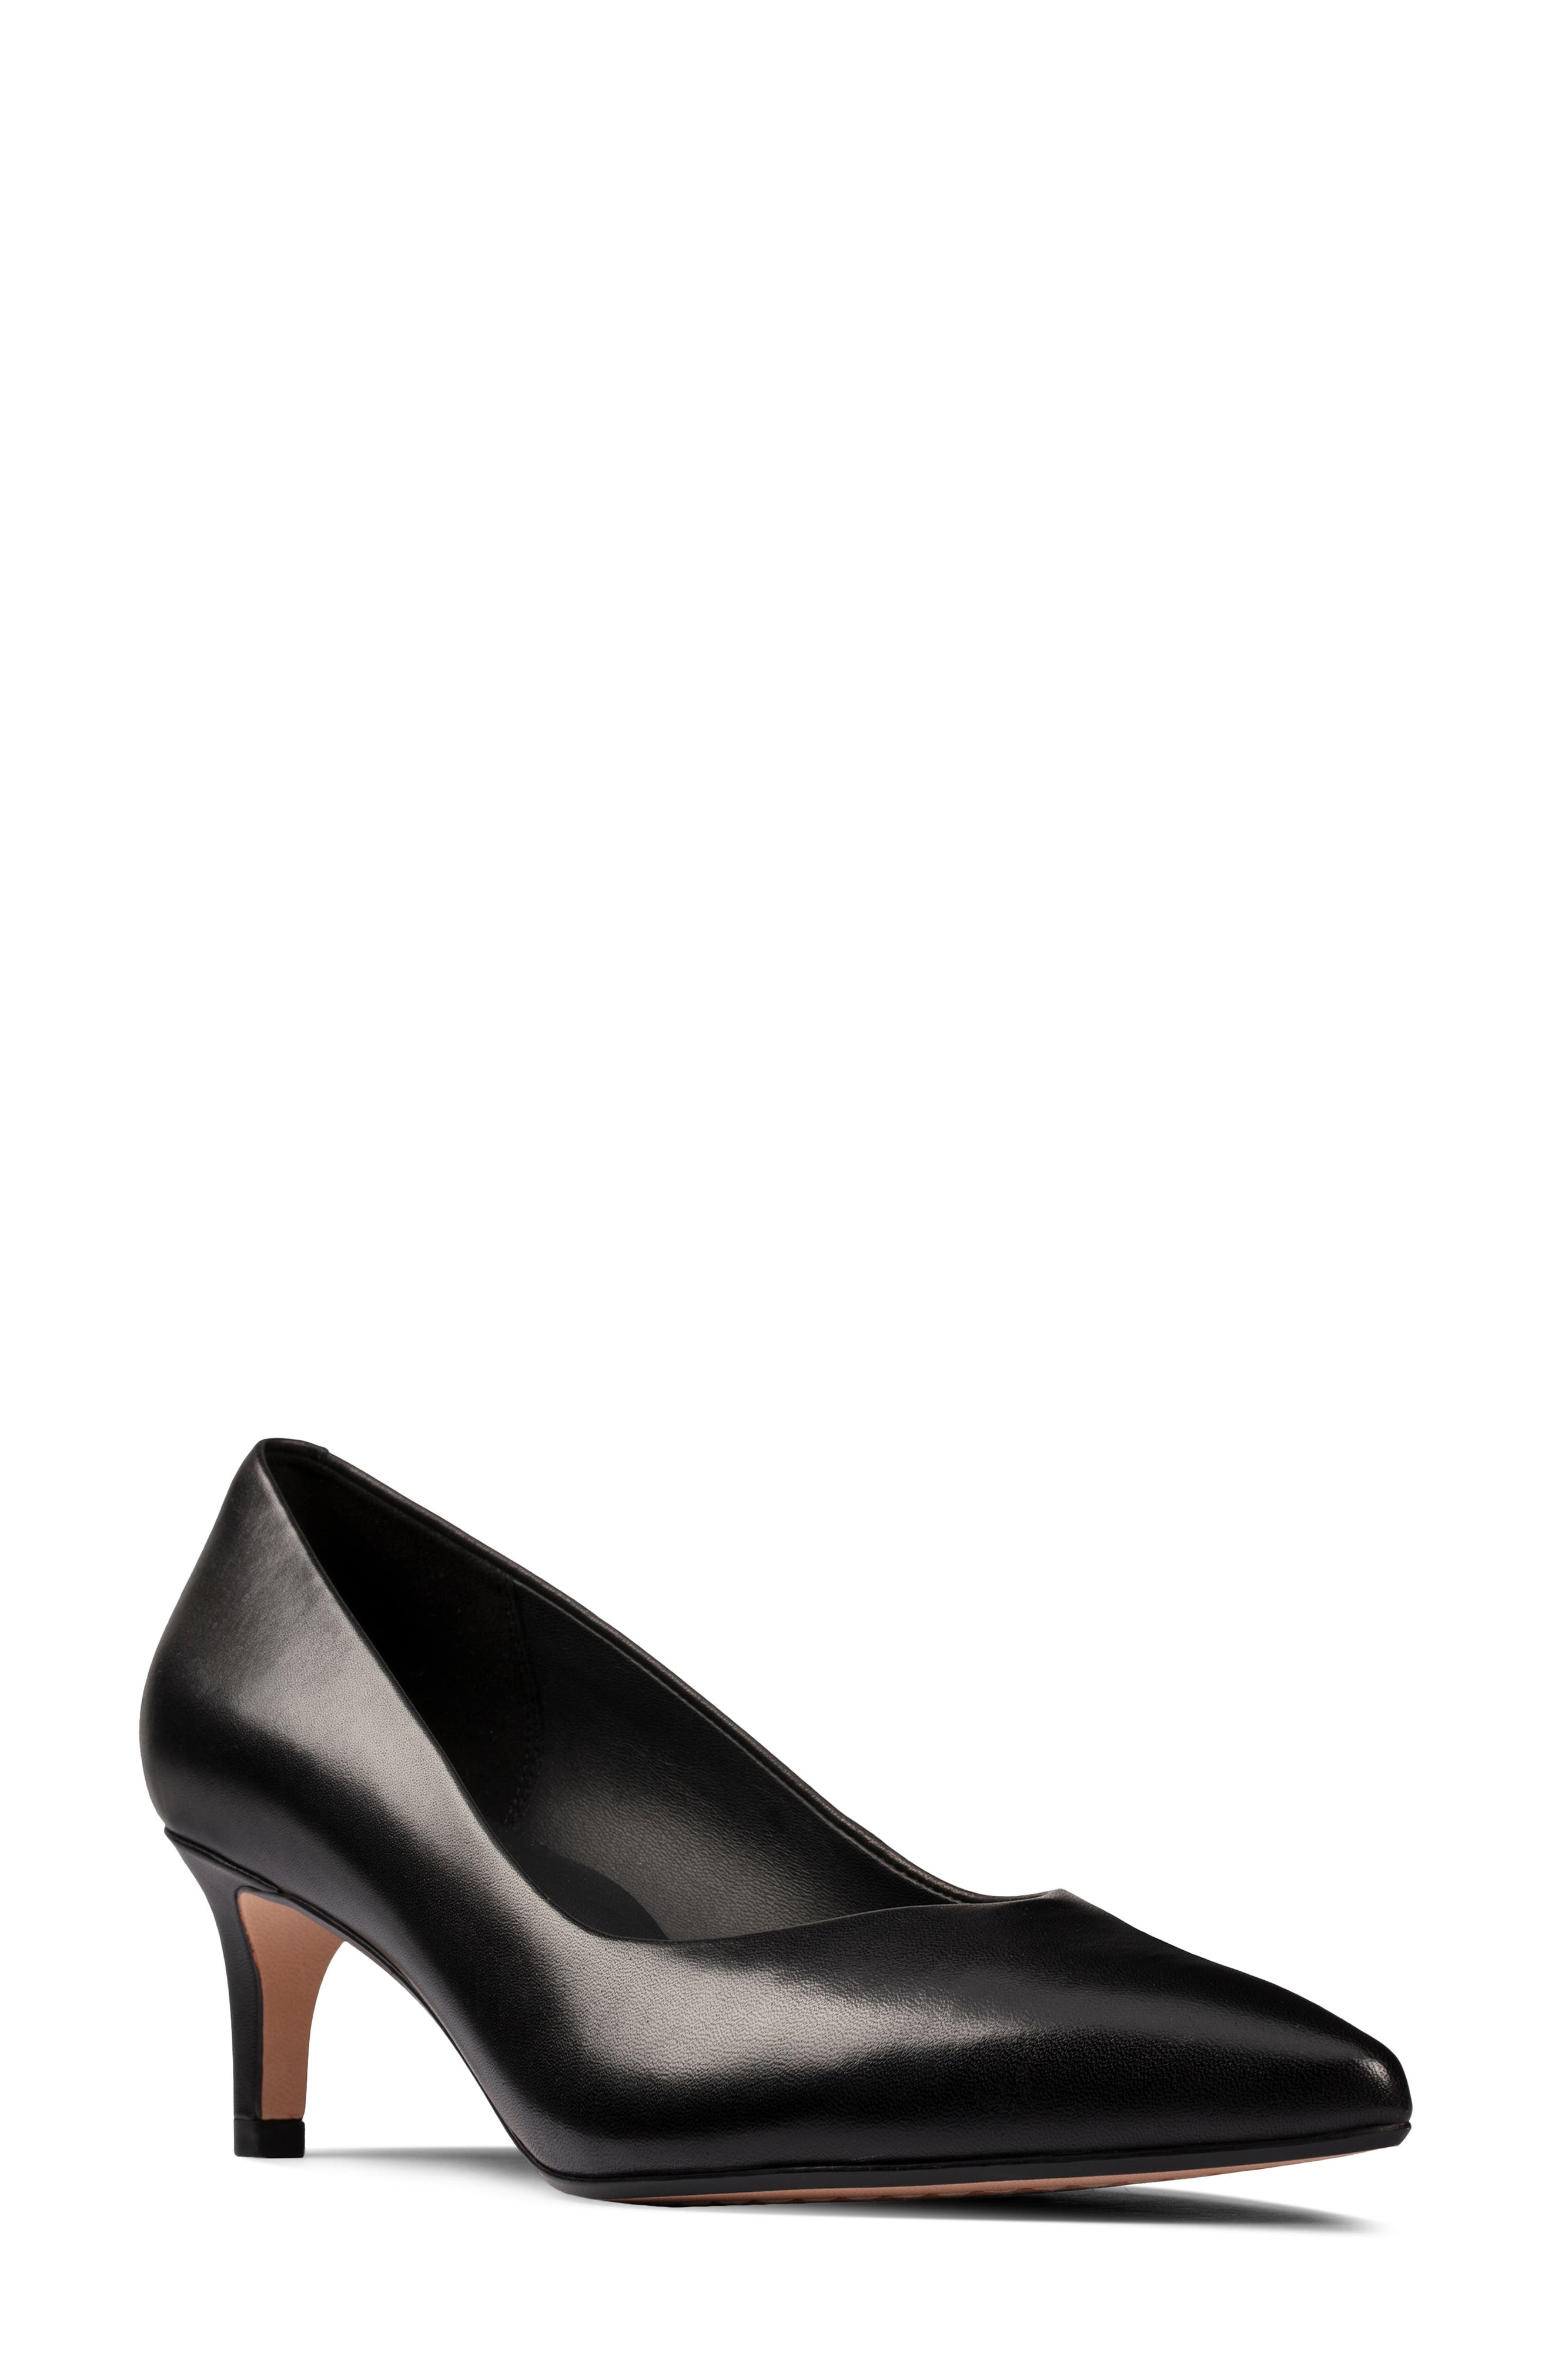 Women's Clarks Laina55 Court 2 Pointed Toe Pump